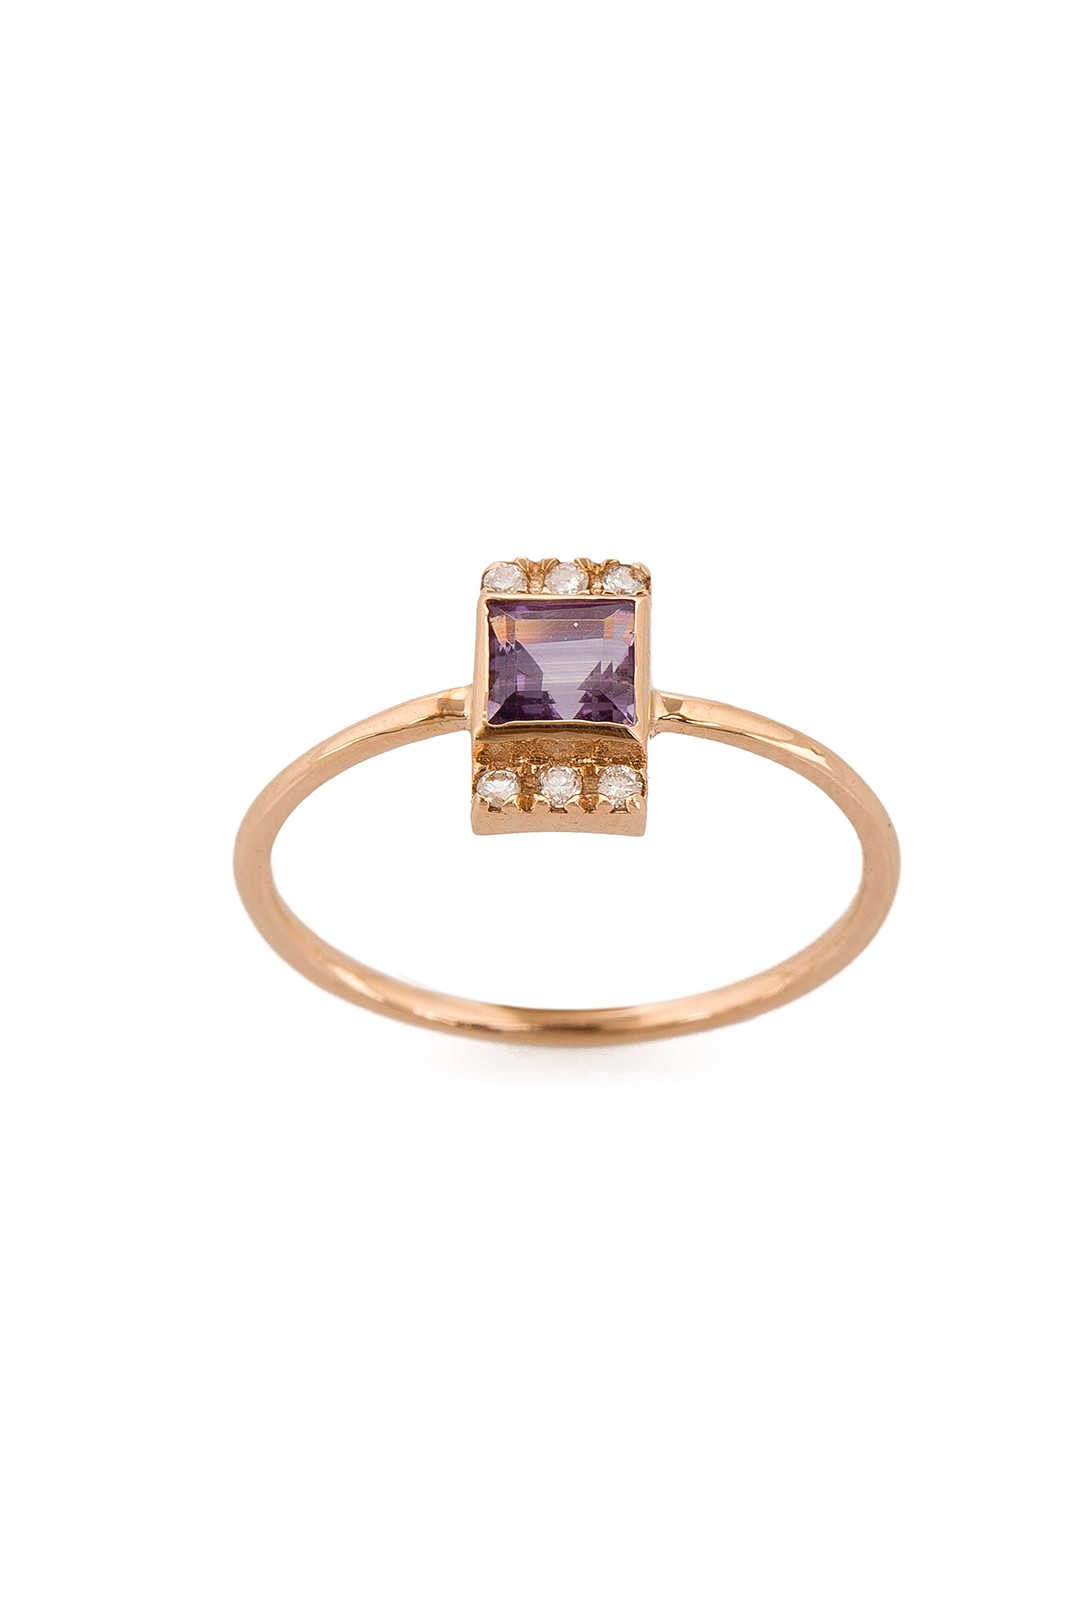 MINI SQUARE AMETHYST AND DIAMOND RING